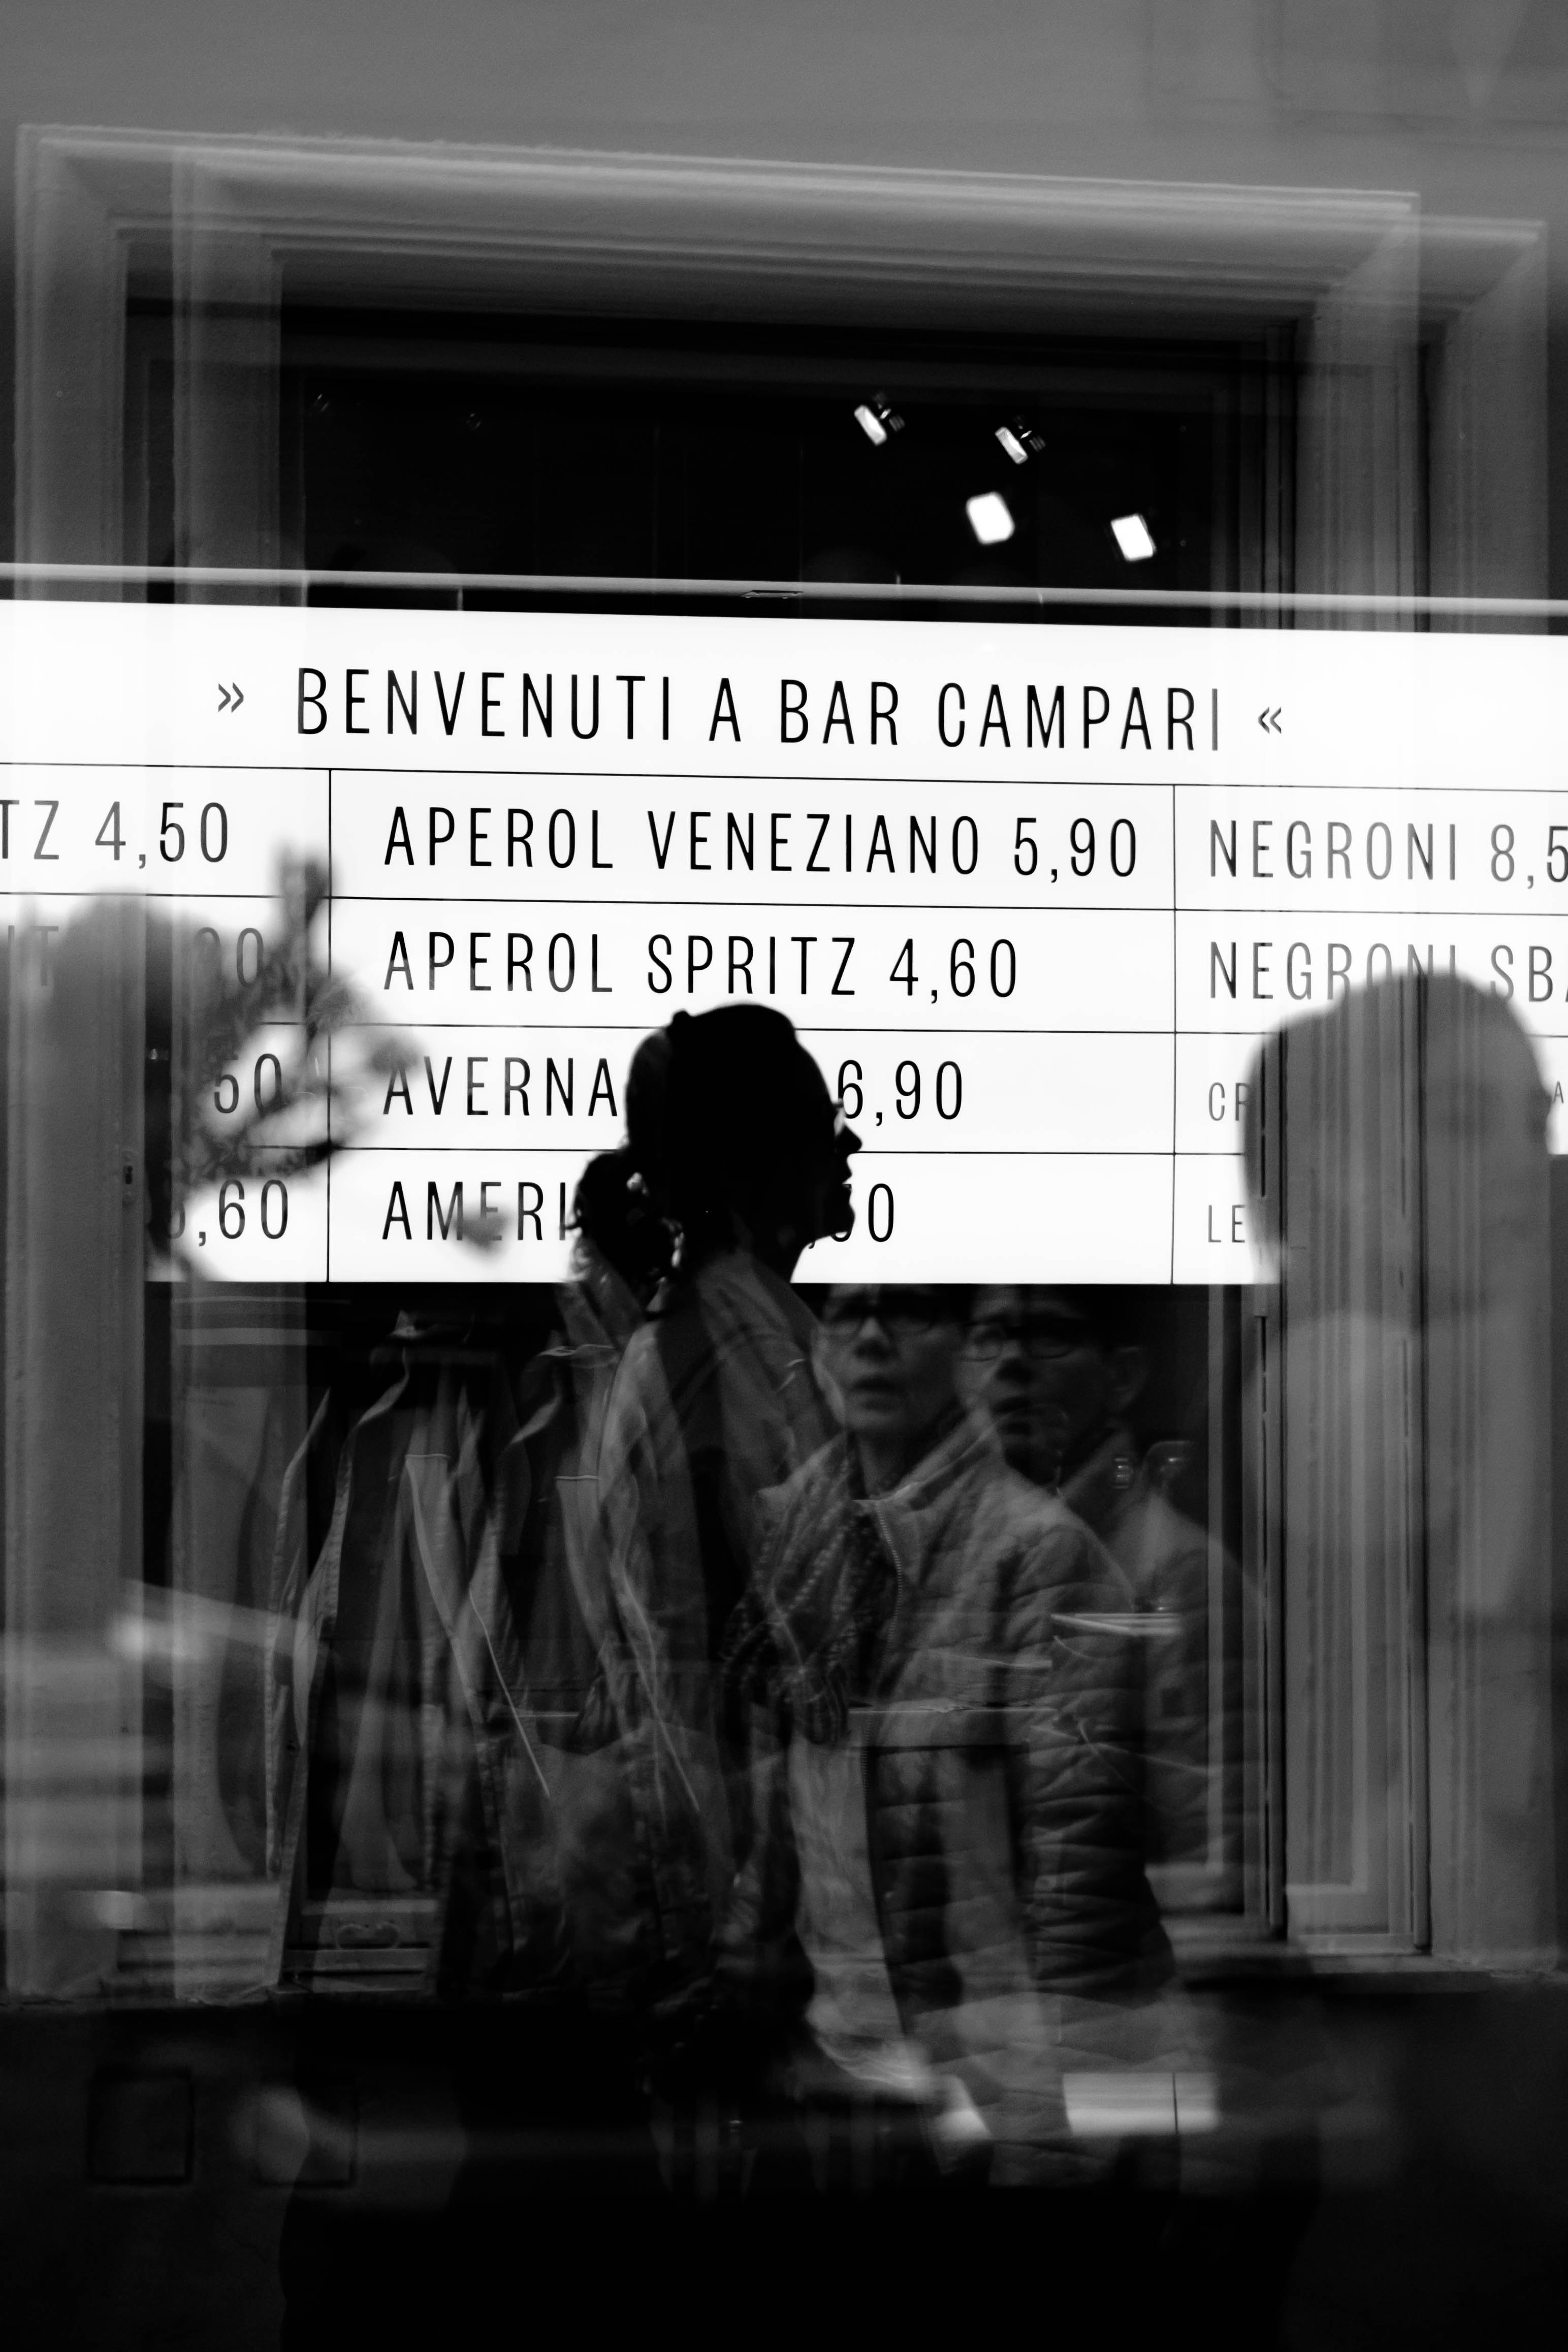 reflection of people from glass panel walking and passing signage in grayscale photography